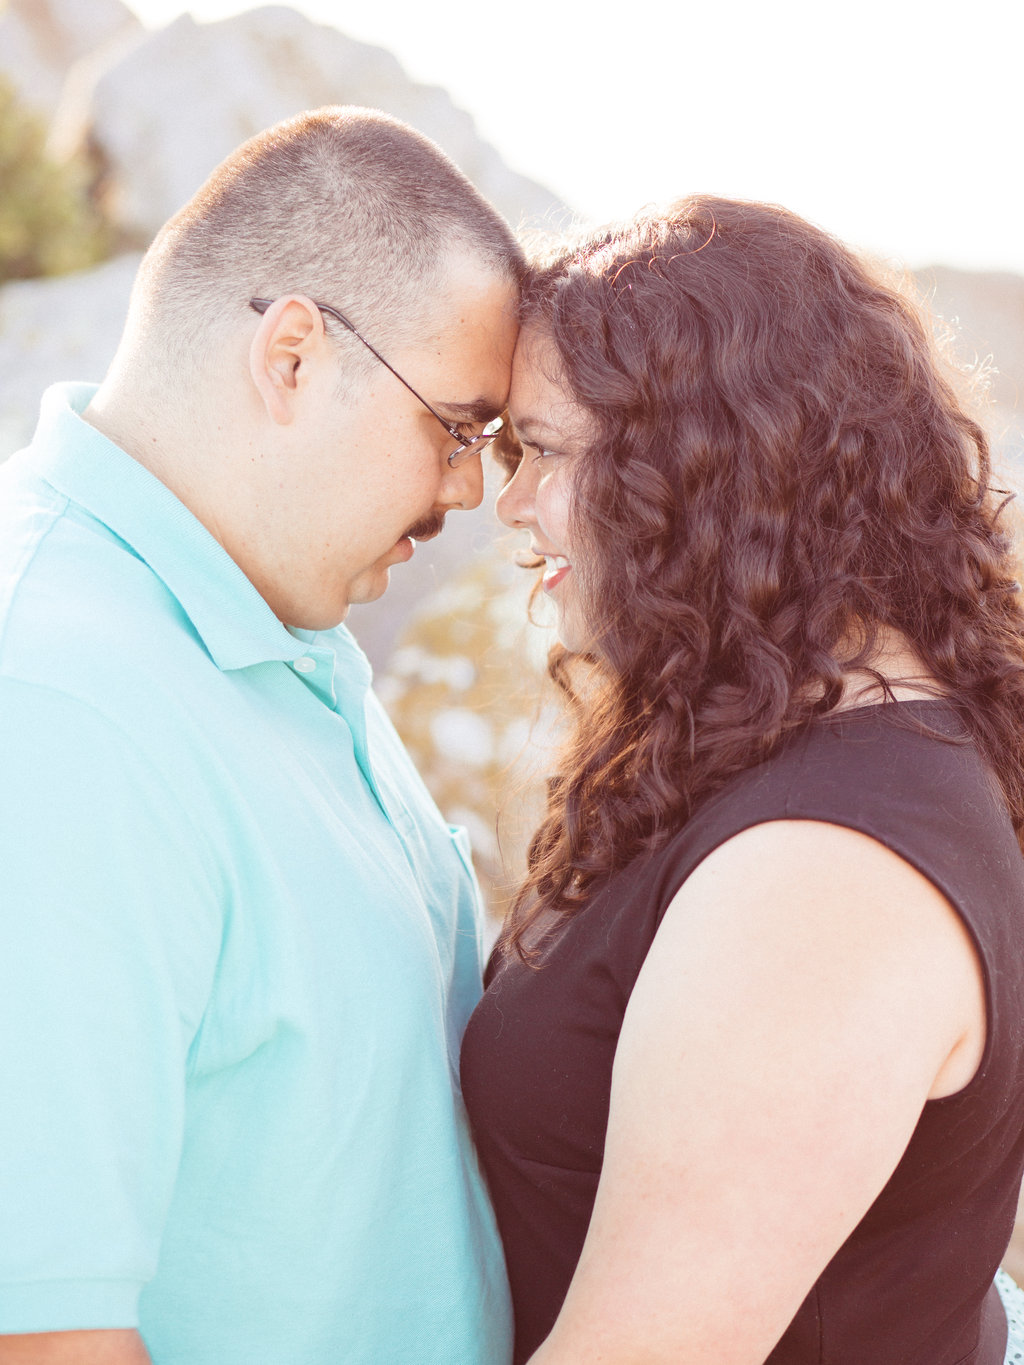 Lacey_Michelle_Photography_lowres-7798.jpg